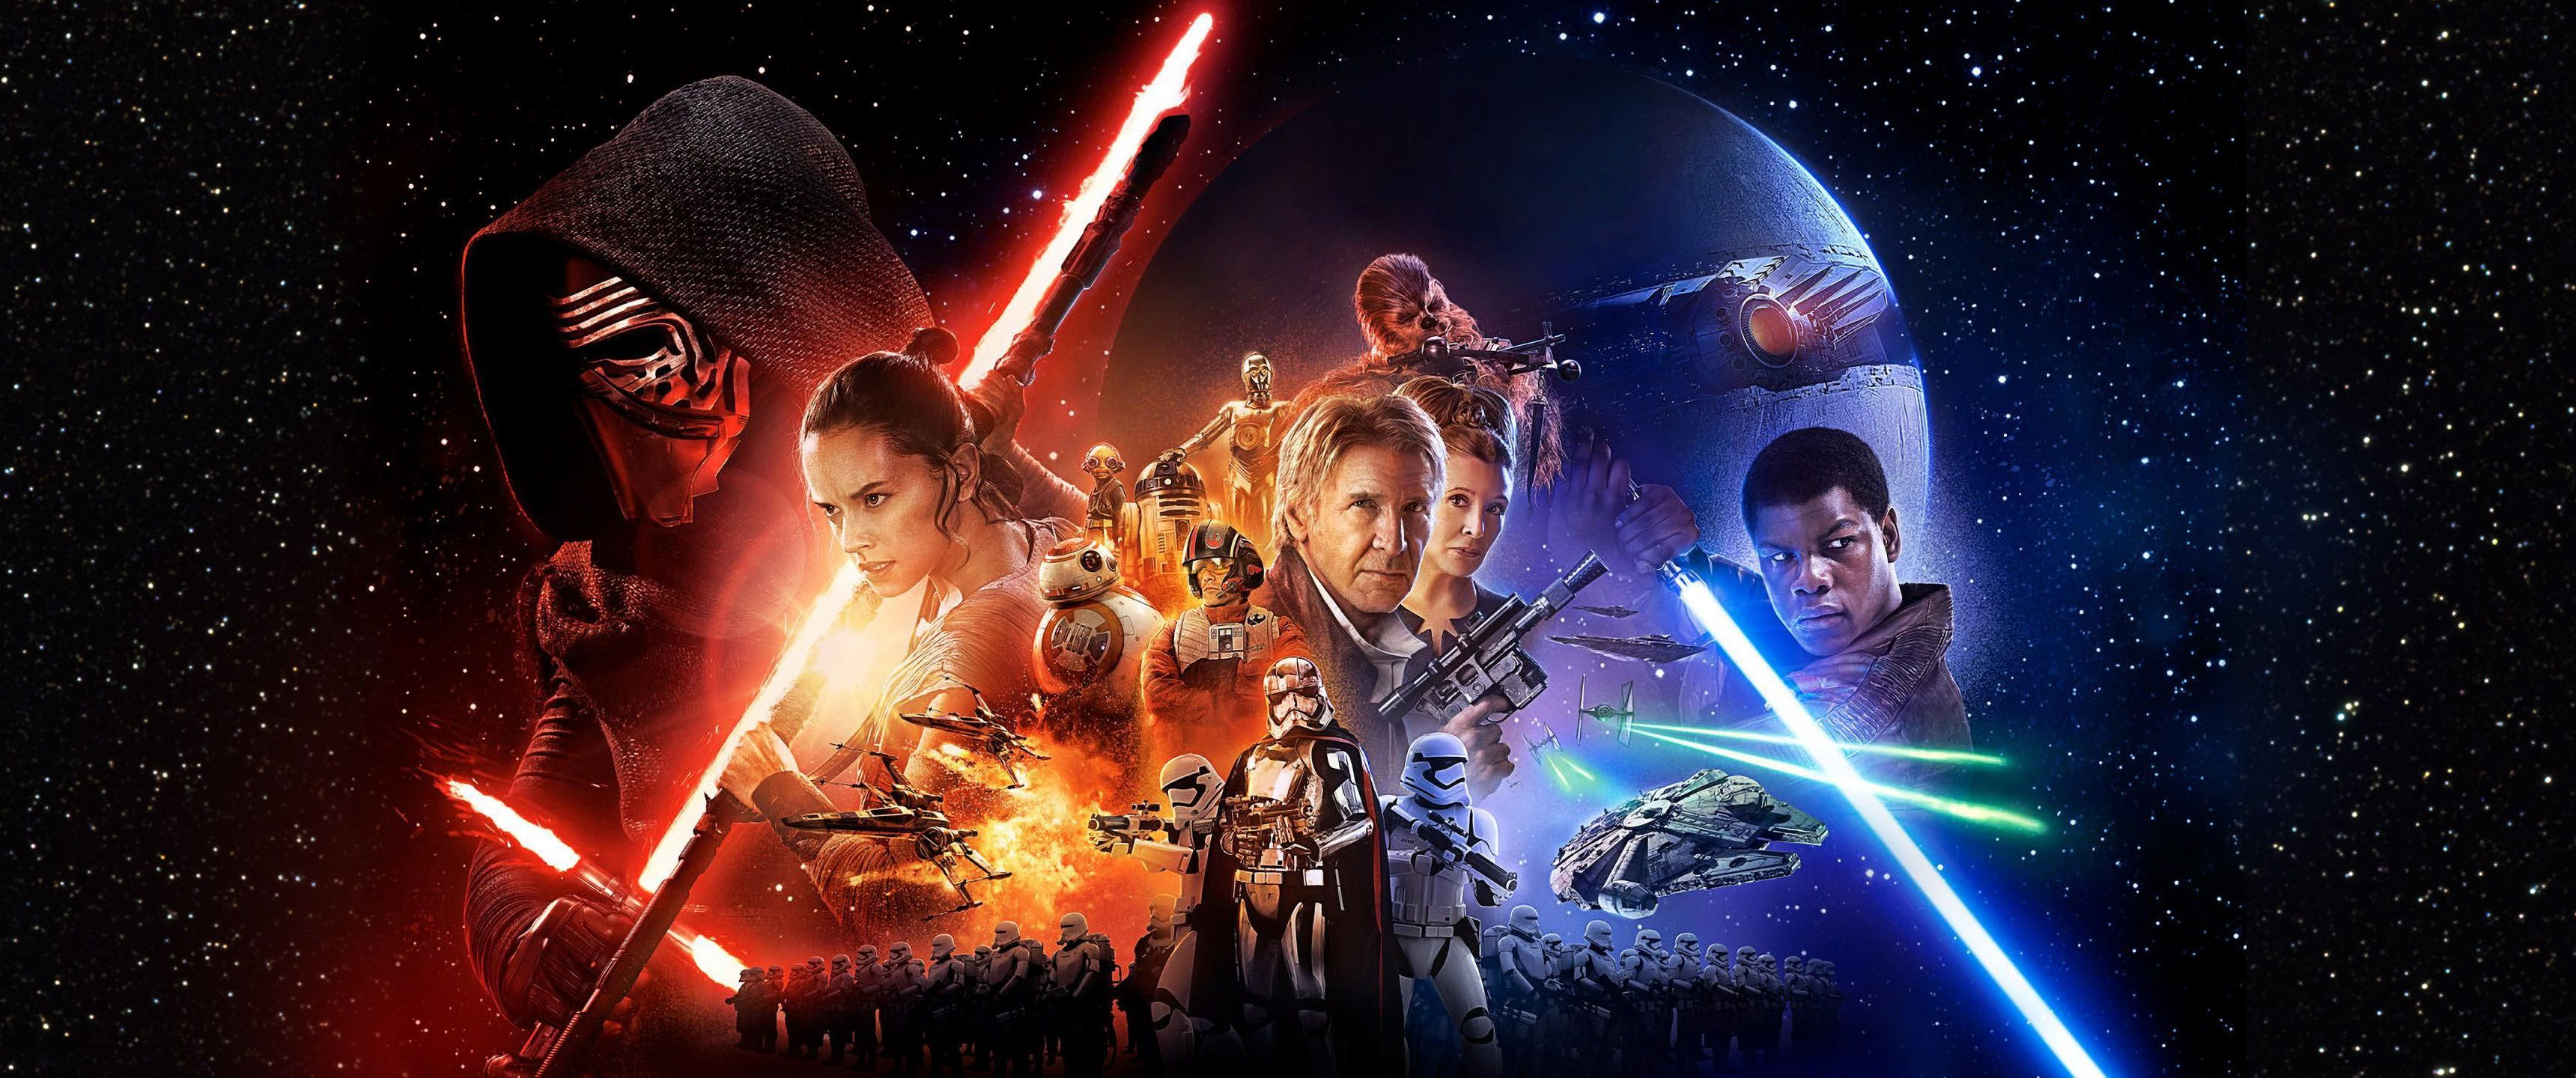 Star Wars Ultra Wide Wallpapers Top Free Star Wars Ultra Wide Backgrounds Wallpaperaccess